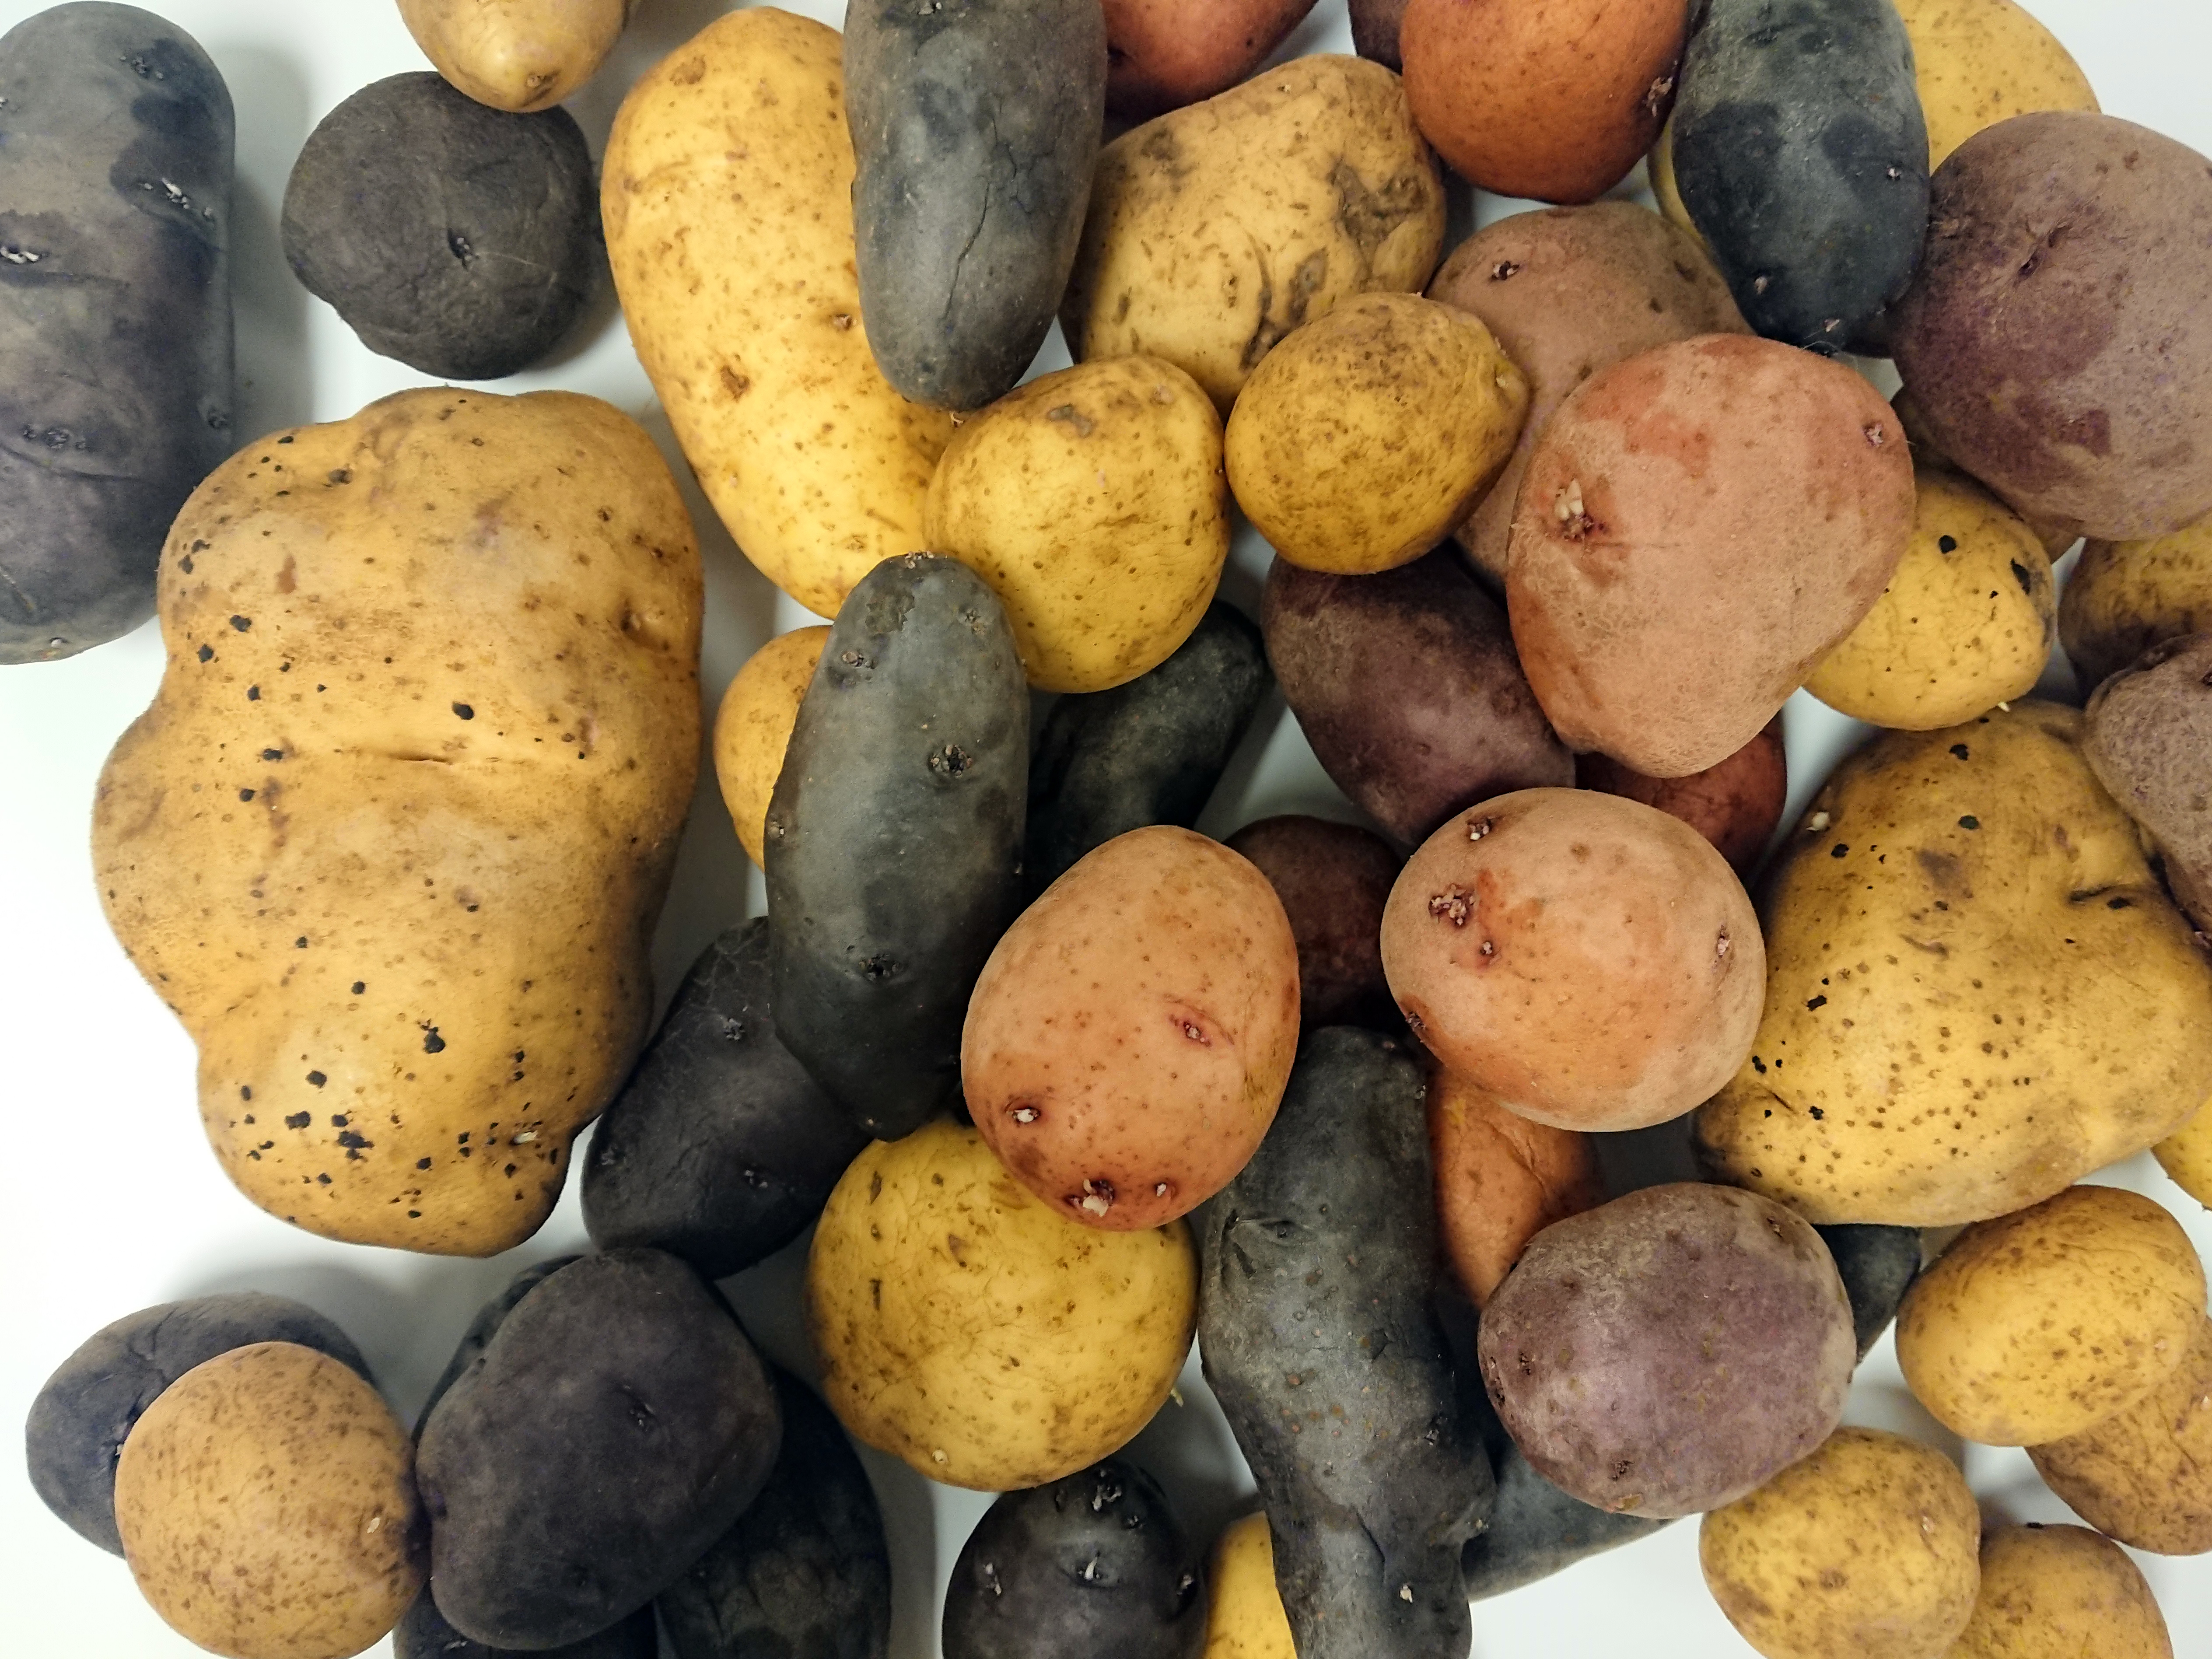 Newswise: Sensory research digs deep to understand why people like potatoes